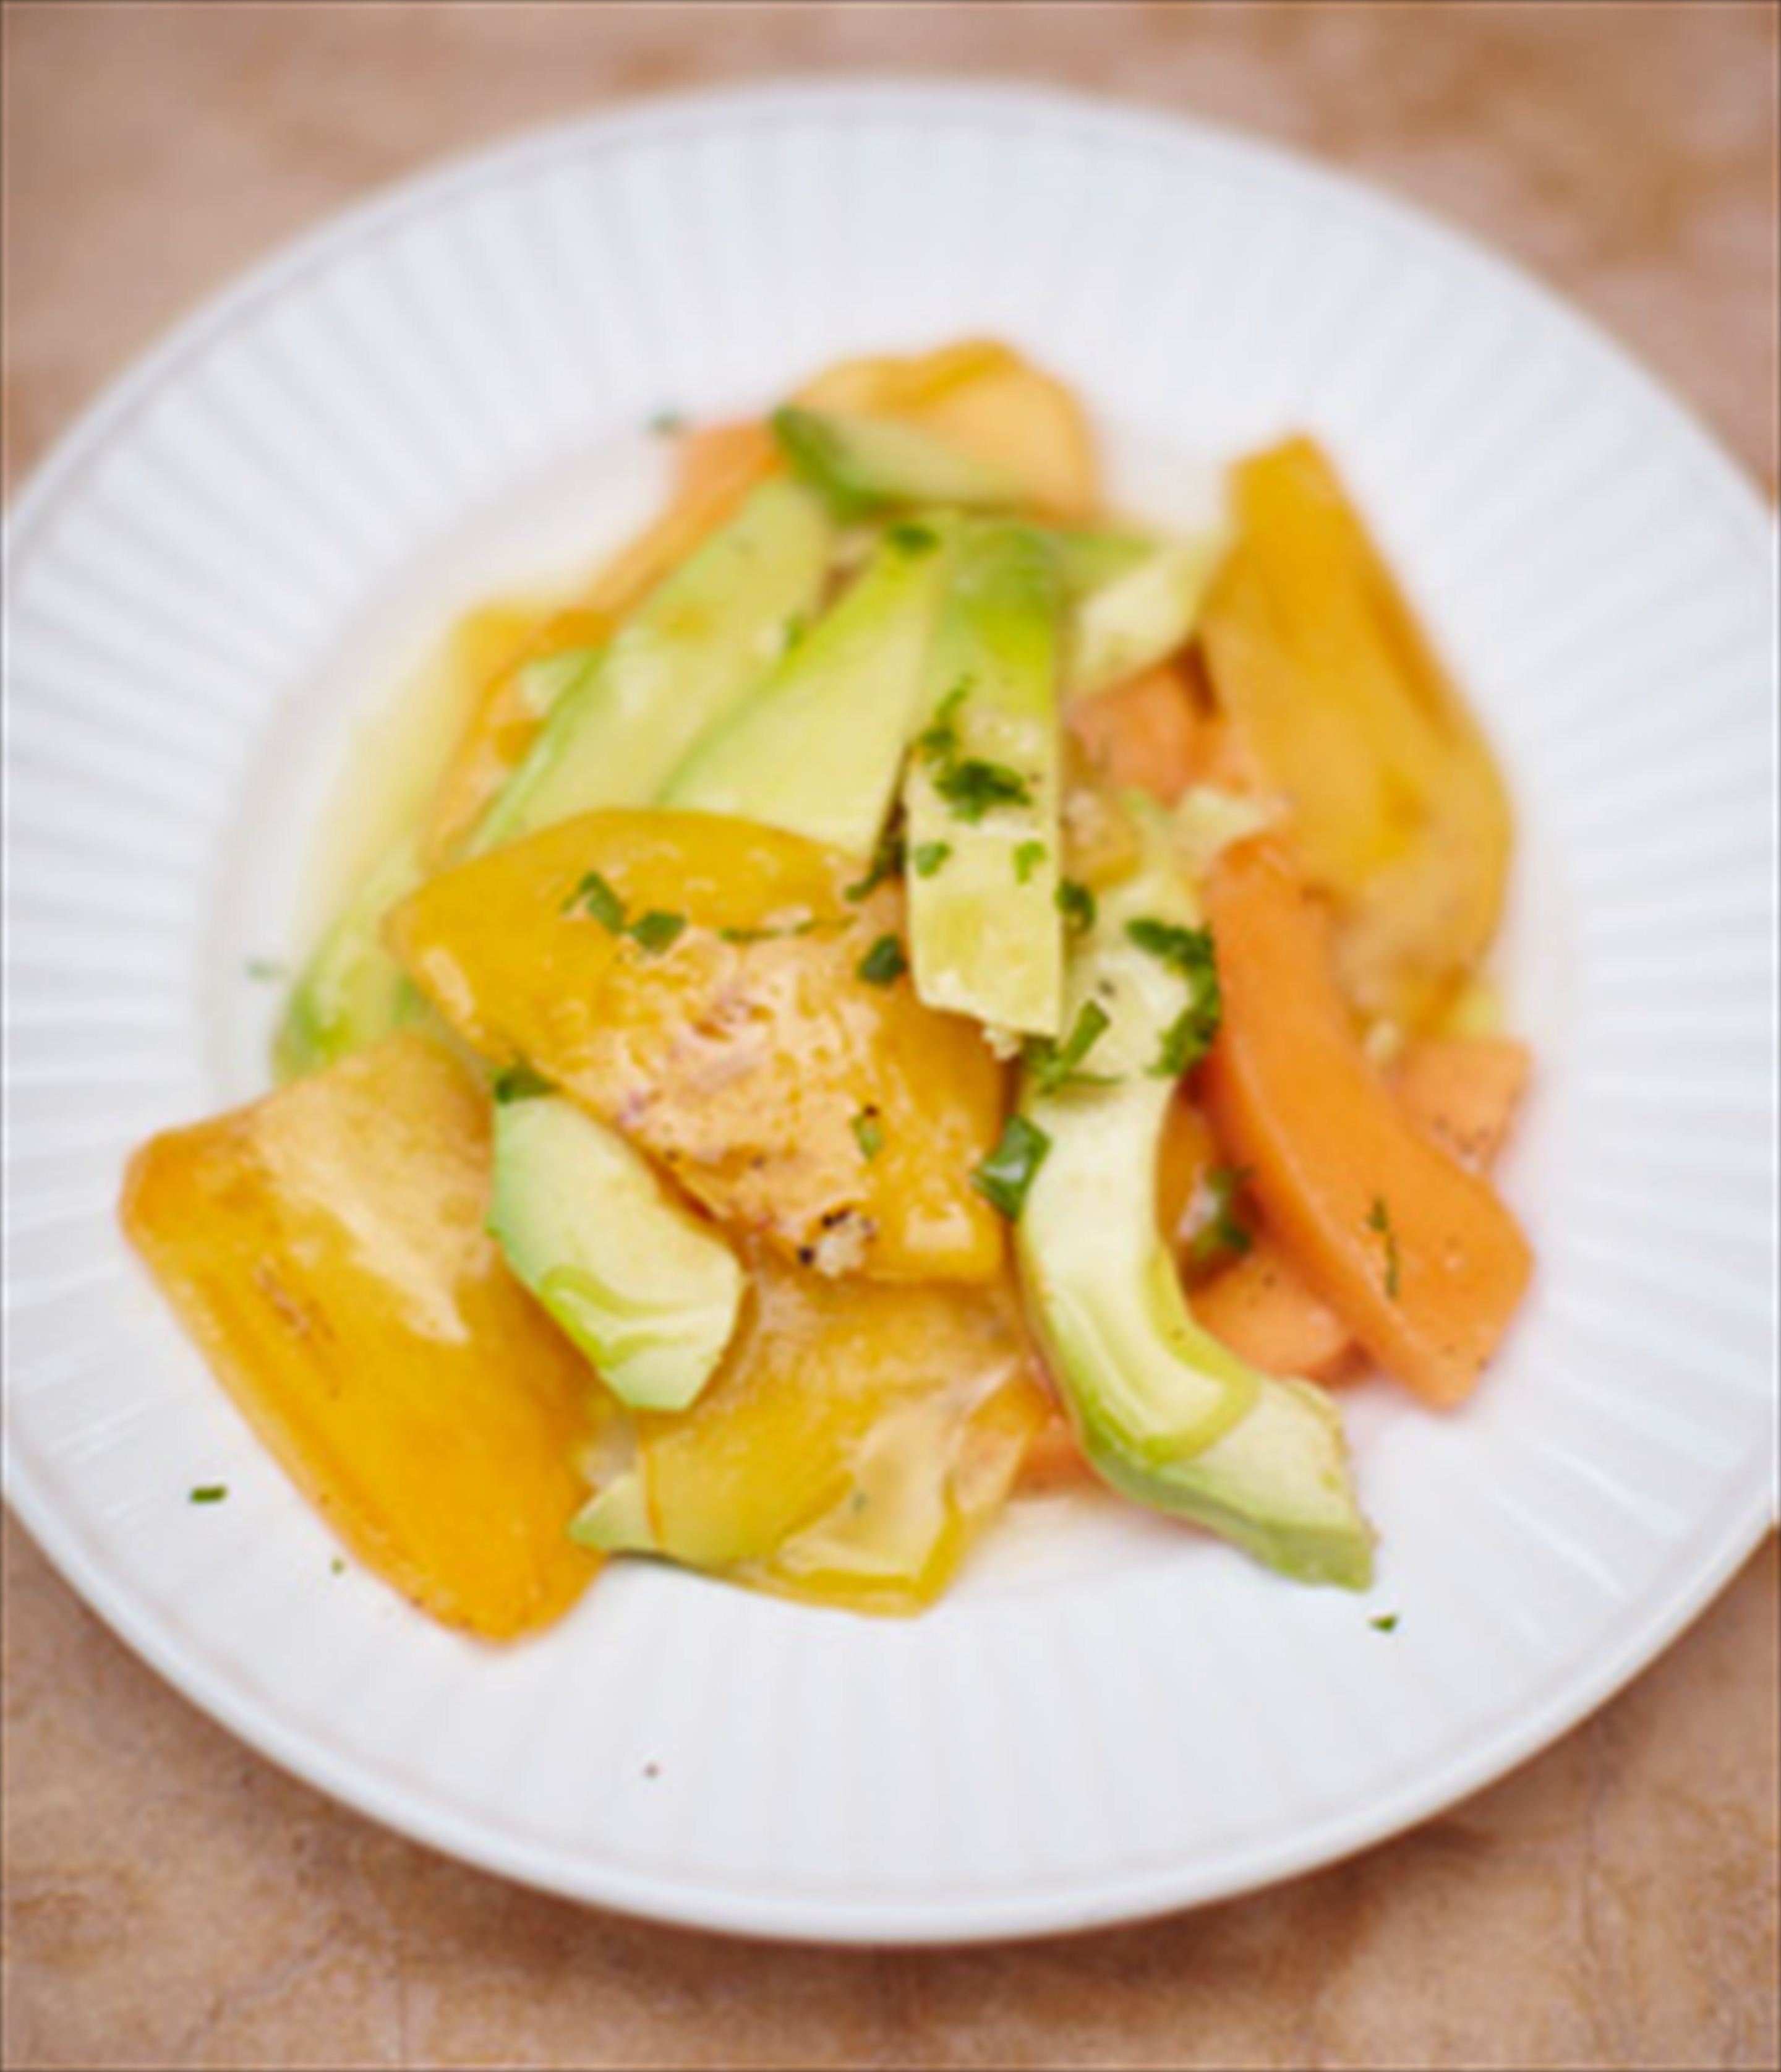 Avocado, persimmon & melon salad